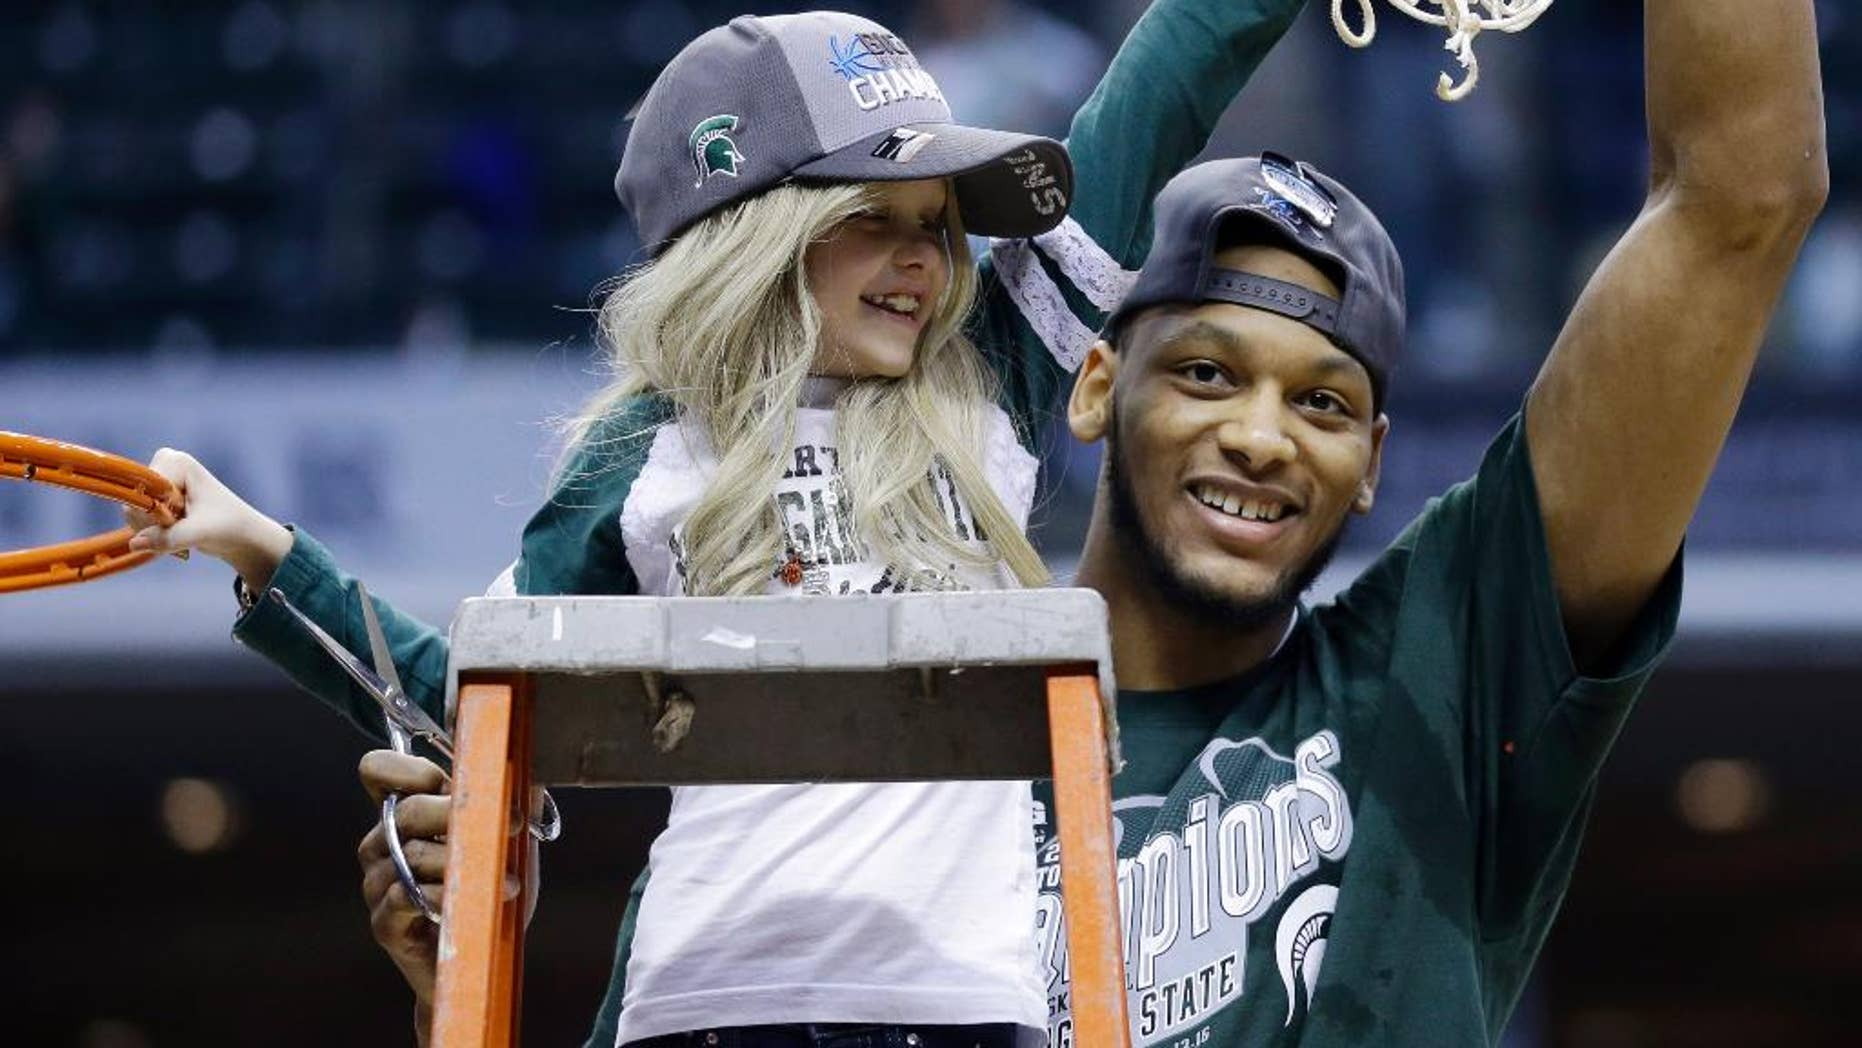 """FILE - In this March 16, 2014 file photo, Michigan State forward Adreian Payne, right, hoists the net with Lacey Holsworth, who is battling cancer, after Michigan State defeated Michigan 69-55 in an NCAA college basketball game in the championship of the Big Ten Conference tournament in Indianapolis. The father of  8-year-old Lacey Holsworth, who befriended Michigan State basketball star Adreian Payne says his daughter has died. Matt Holsworth says Lacey Holsworth died at their St. Johns, Mich., home late Tuesday, April 8, 2014 """"with her mommy and daddy holding her in their arms."""" (AP Photo/Michael Conroy, File)"""